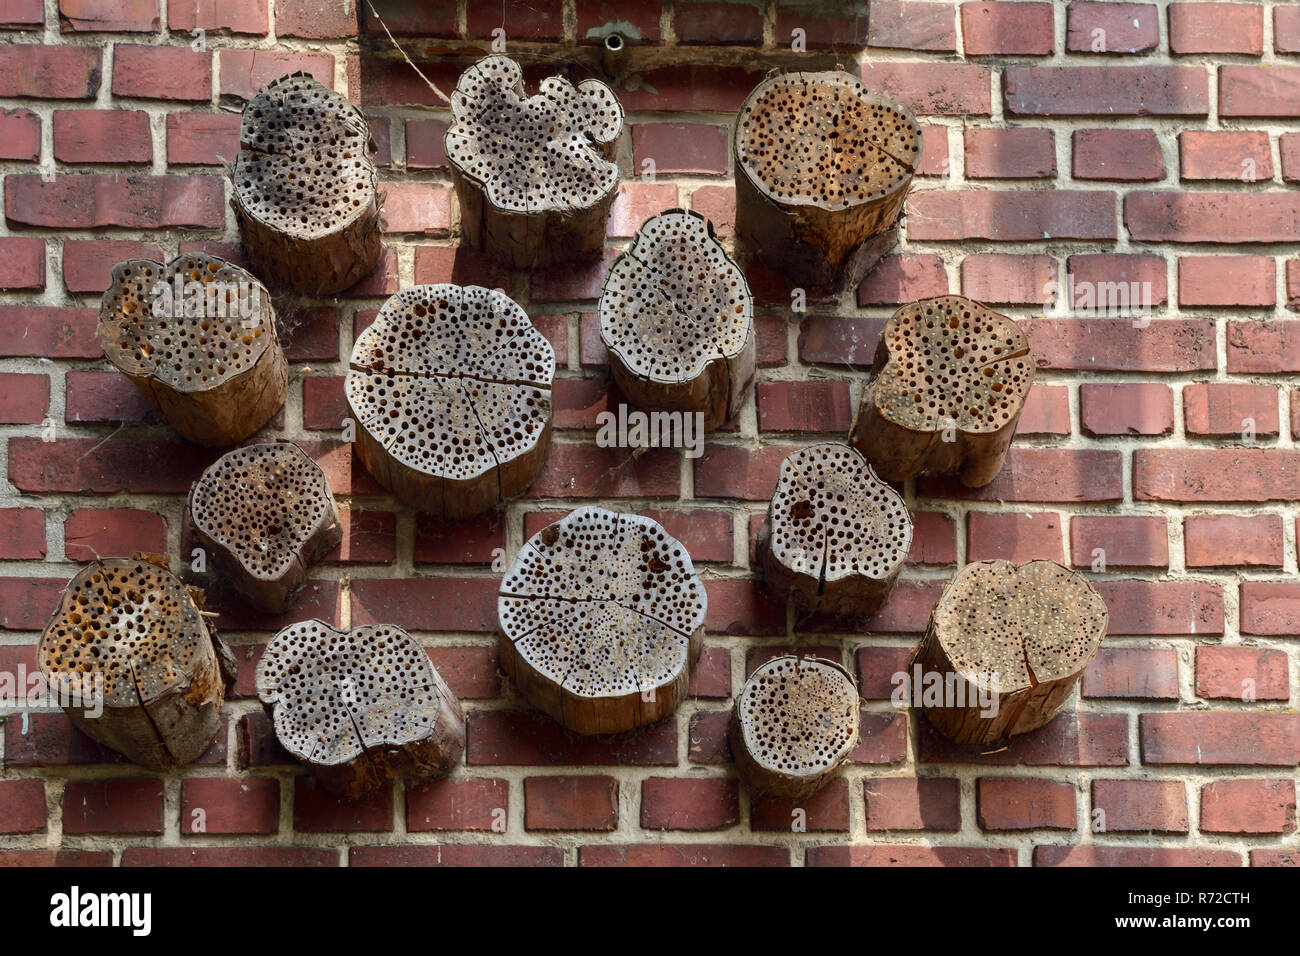 Insect boxes, insect asylum, insectshotels, artificial help for nesting and overwintering, Germany, Europe. - Stock Image